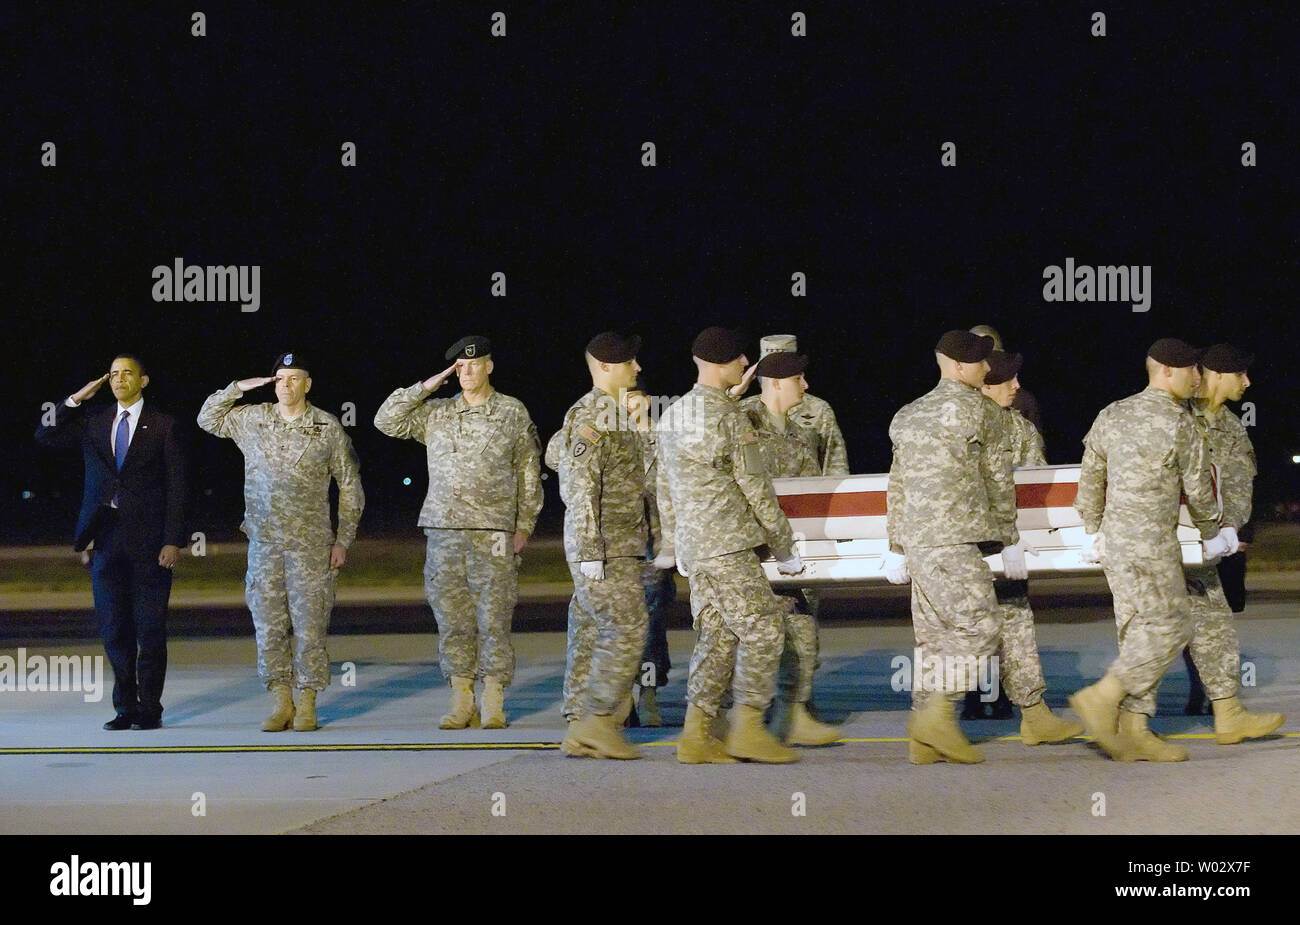 From left, U.S. President Barack Obama, Assistant Judge Advocate General of the U.S. Army Maj. Gen. Daniel V. Wright and Brig. Gen. Michael S. Repass, commanding general of U.S. Army Special Operations Command, render honors as a team of Soldiers carry the remains of Sgt. Dale R. Griffin during a dignified transfer ceremony at Dover Air Force Base, Delaware on October 29, 2009. Griffin, who was assigned to 1st Battalion, 17th Infantry Regiment, 5th Stryker Brigade Combat Team, 2nd Infantry Division, was killed in action on October 27, 2009, by a roadside bomb in the Kandahar province of Afghan Stock Photo